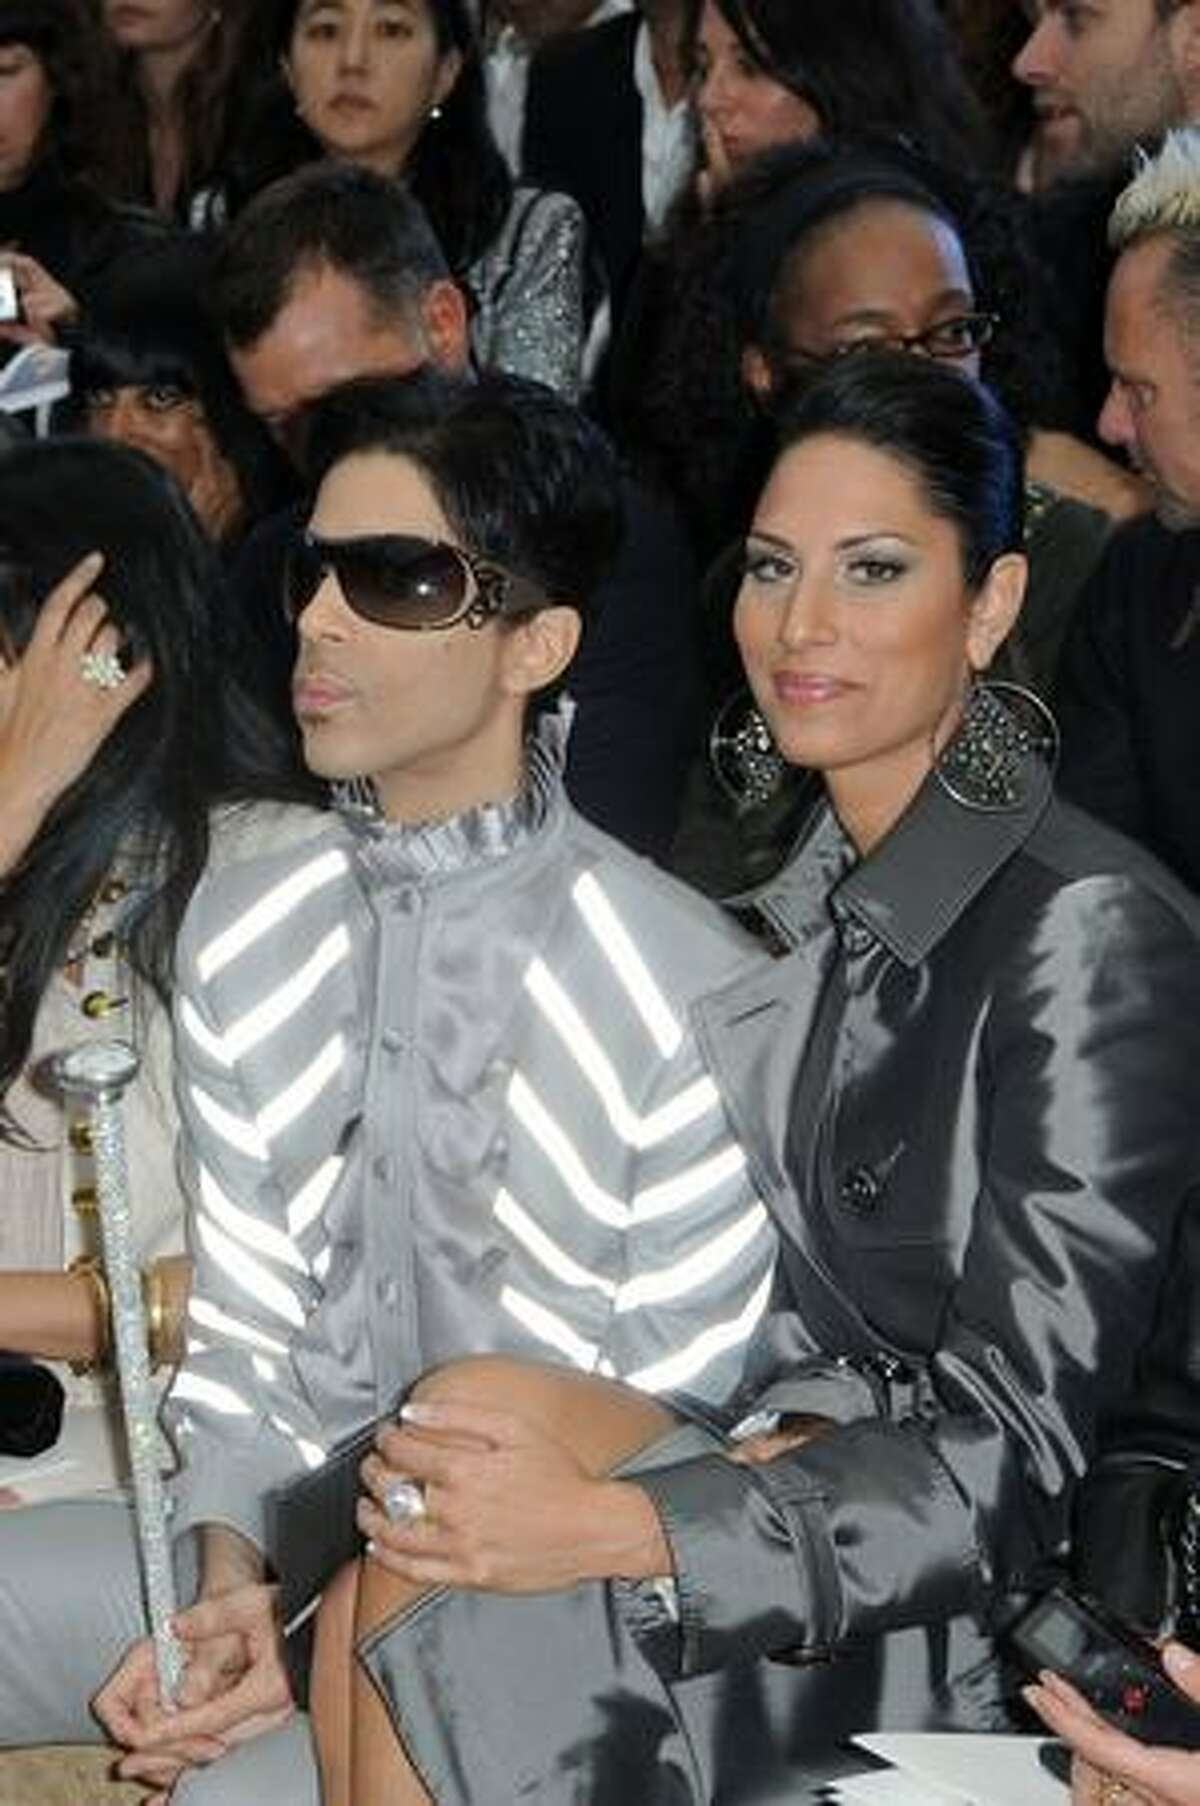 Prince and guest attend.